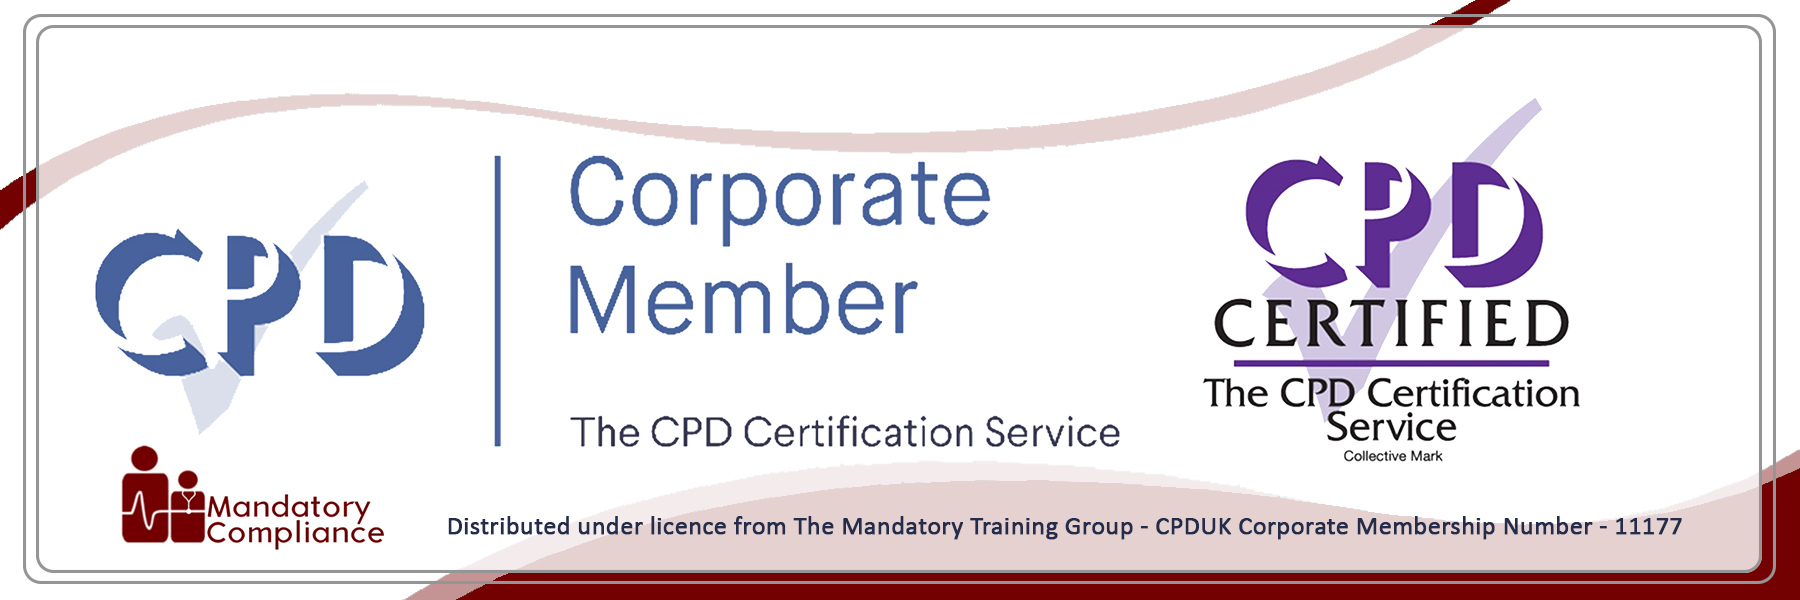 Creating a Mentally Healthy Work Environment - Level 1 - Online Learning Courses - E-Learning Courses - Mandatory Compliance UK -